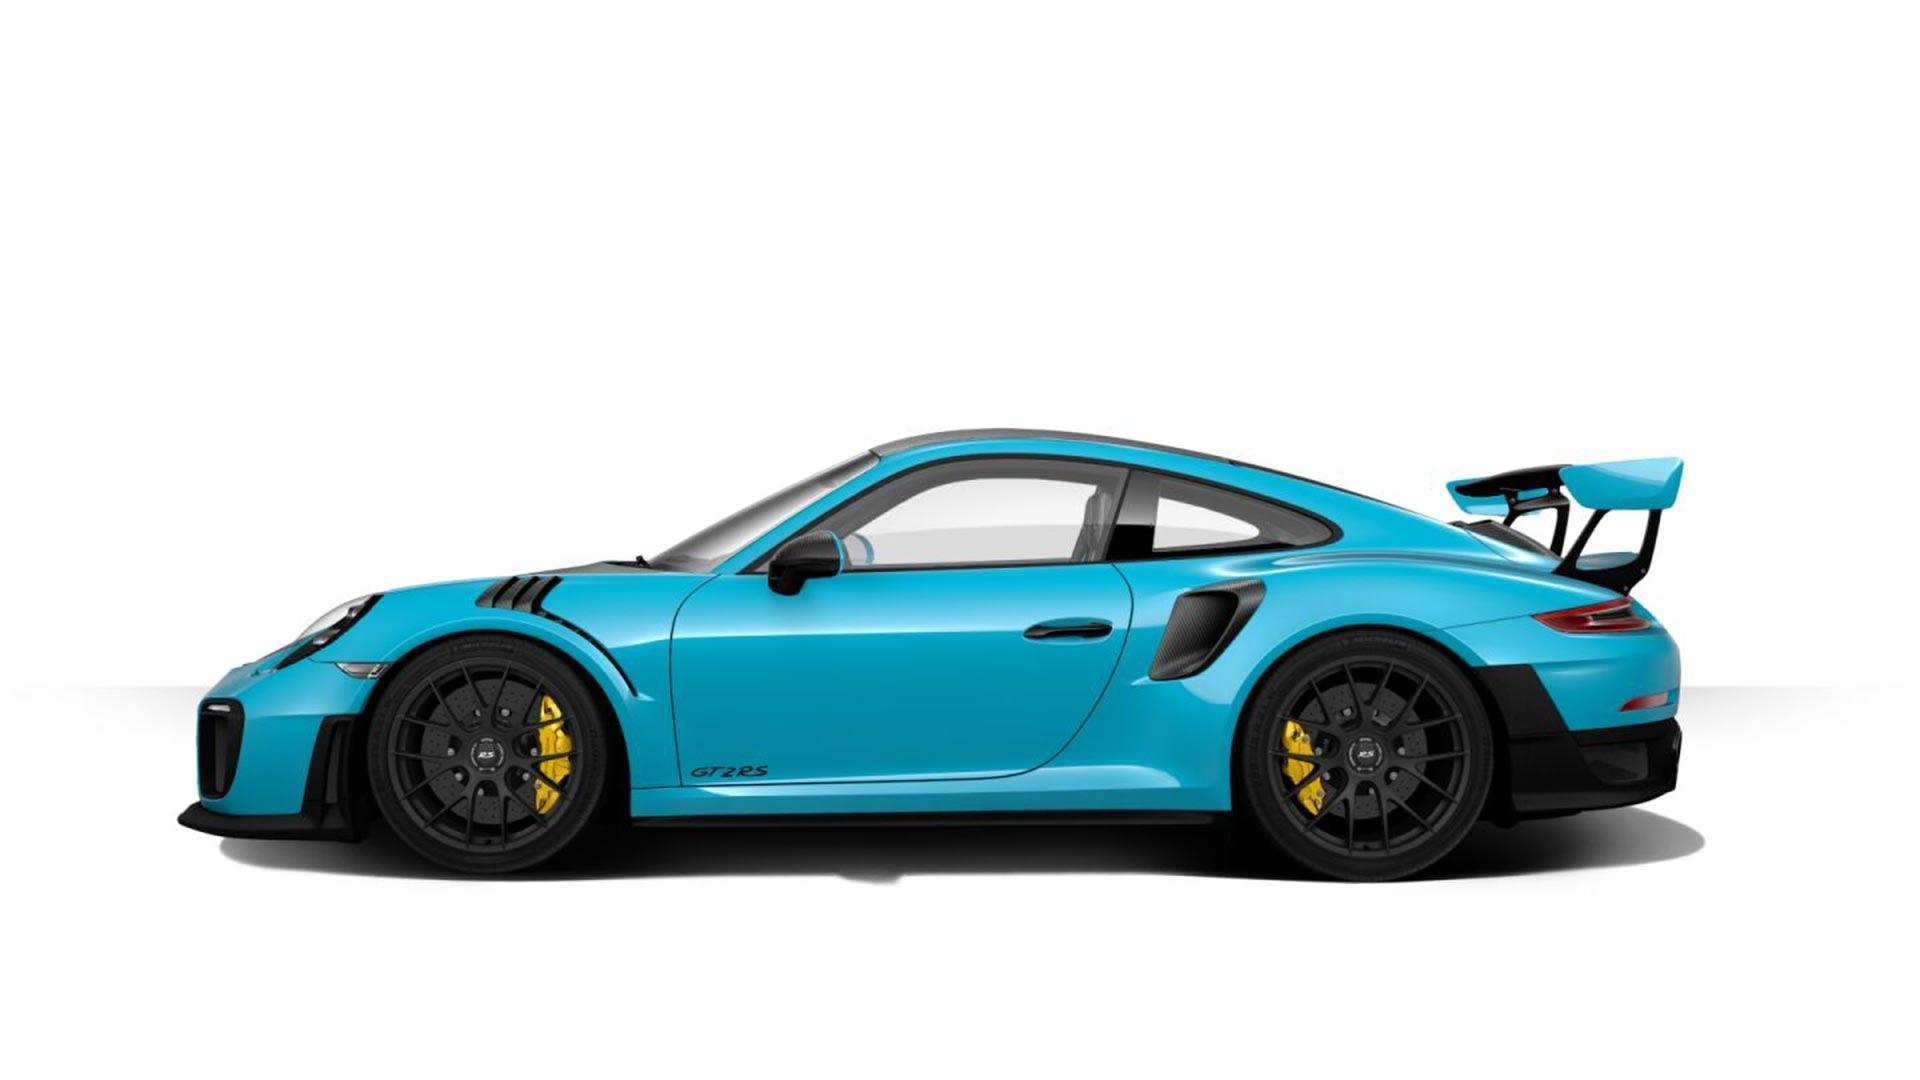 71 Concept of 2019 Porsche Gt2 Rs Redesign and Concept with 2019 Porsche Gt2 Rs